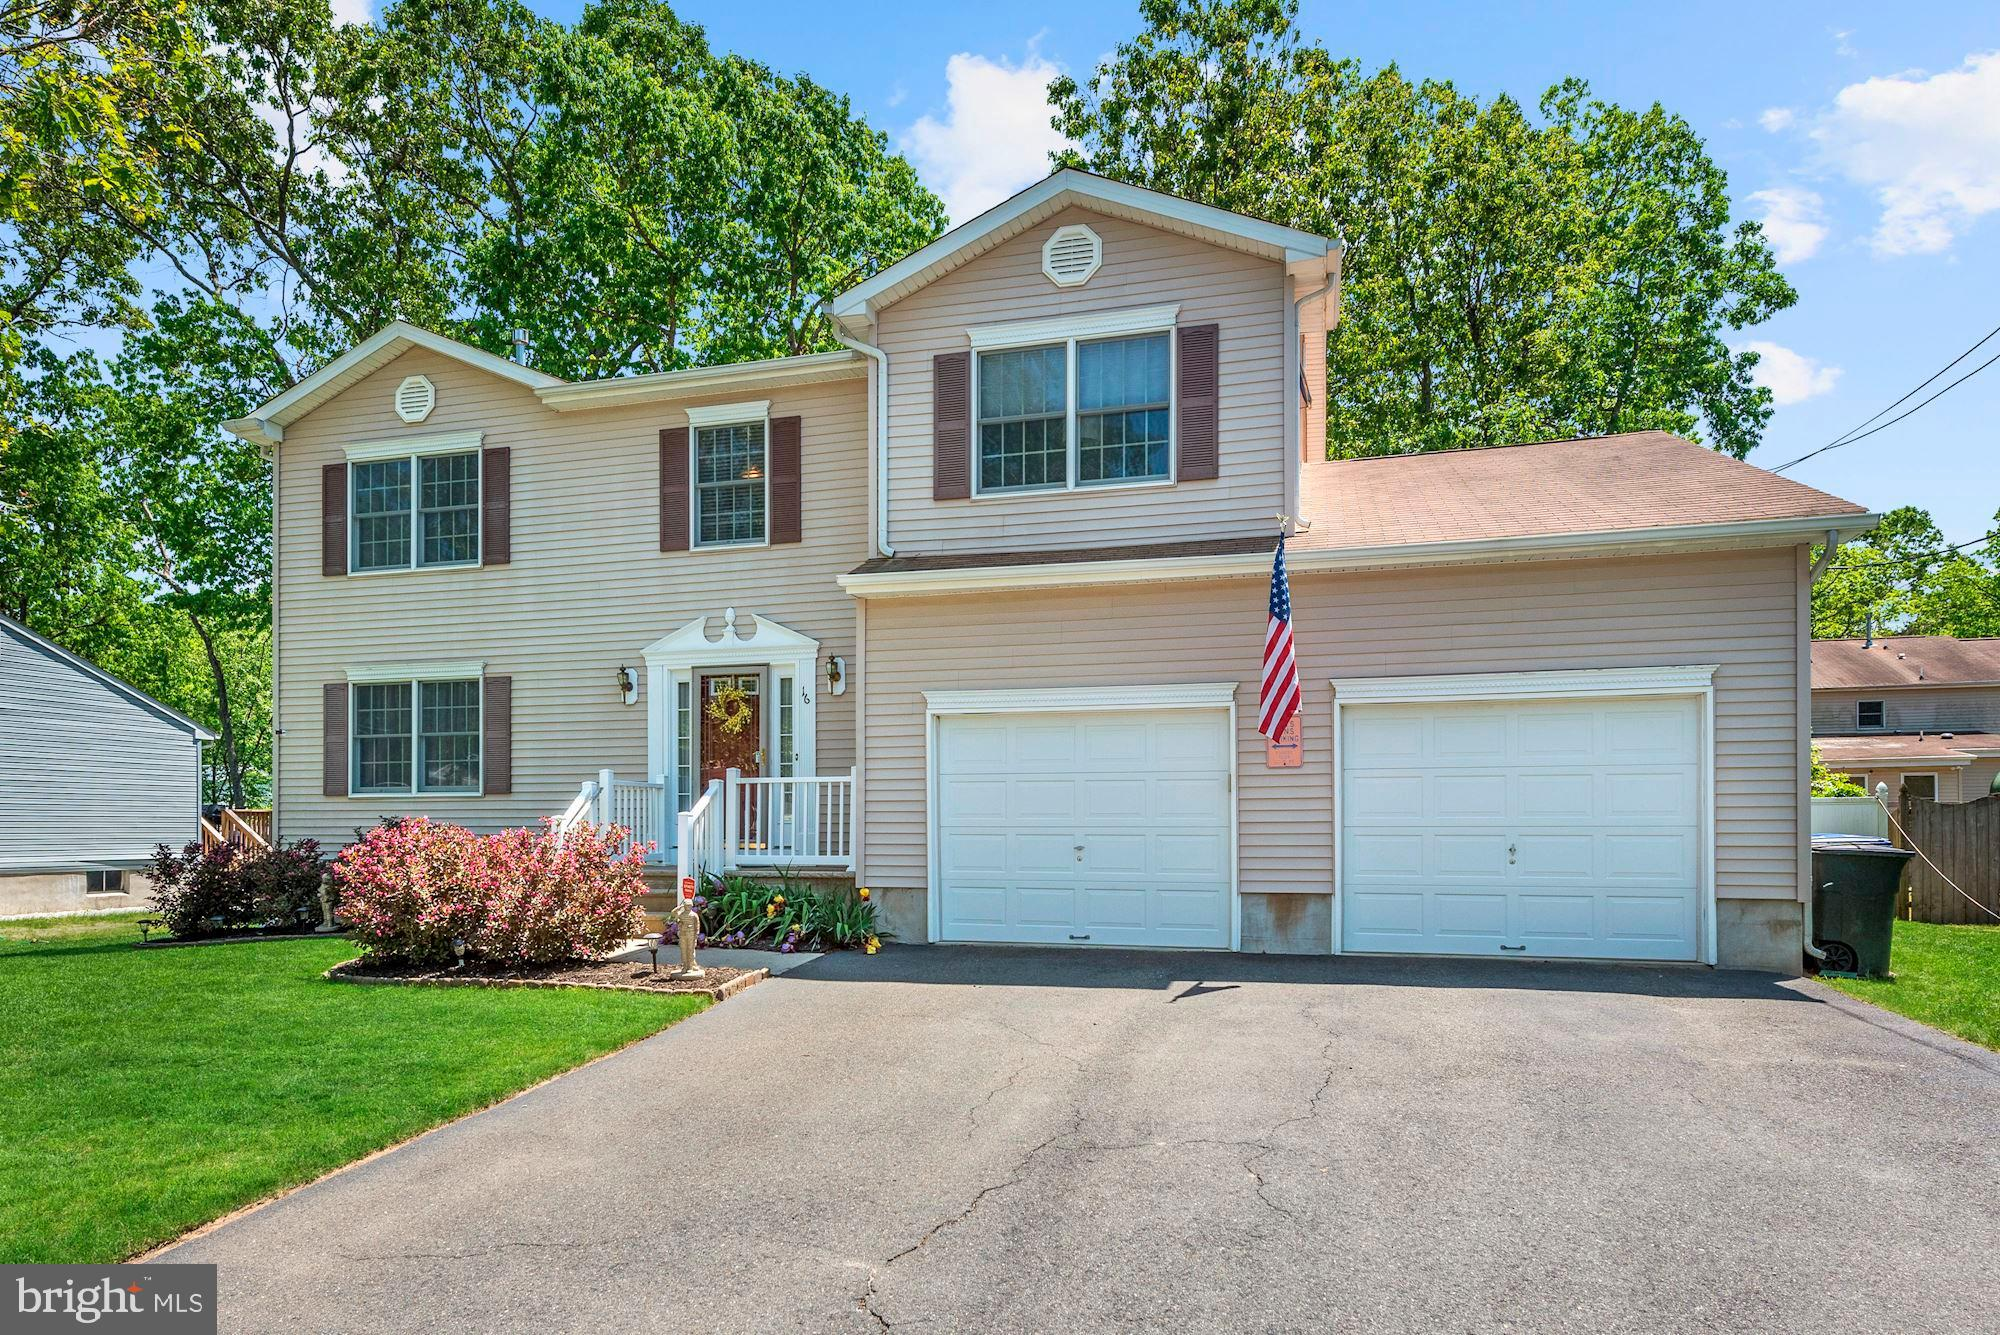 16 BELL PLACE, BROWNS MILLS, NJ 08015